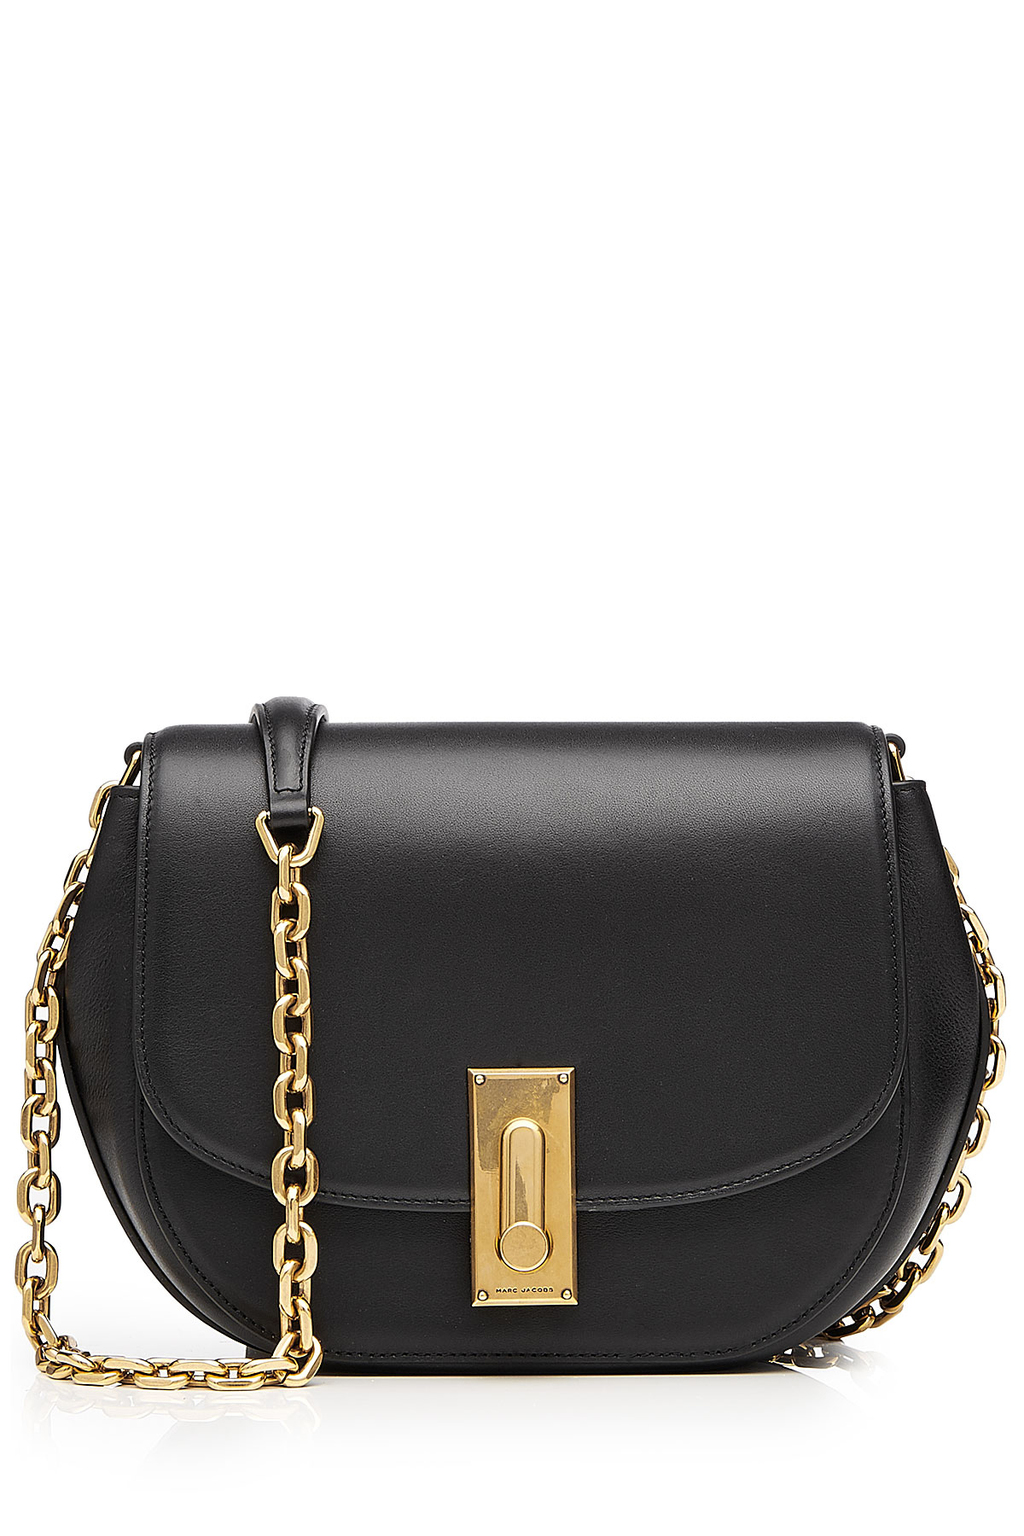 West End Leather Saddle Bag Black - secondary colour: gold; predominant colour: black; occasions: casual; type of pattern: standard; style: messenger; length: across body/long; size: small; material: leather; pattern: plain; finish: plain; embellishment: chain/metal; season: s/s 2016; wardrobe: highlight